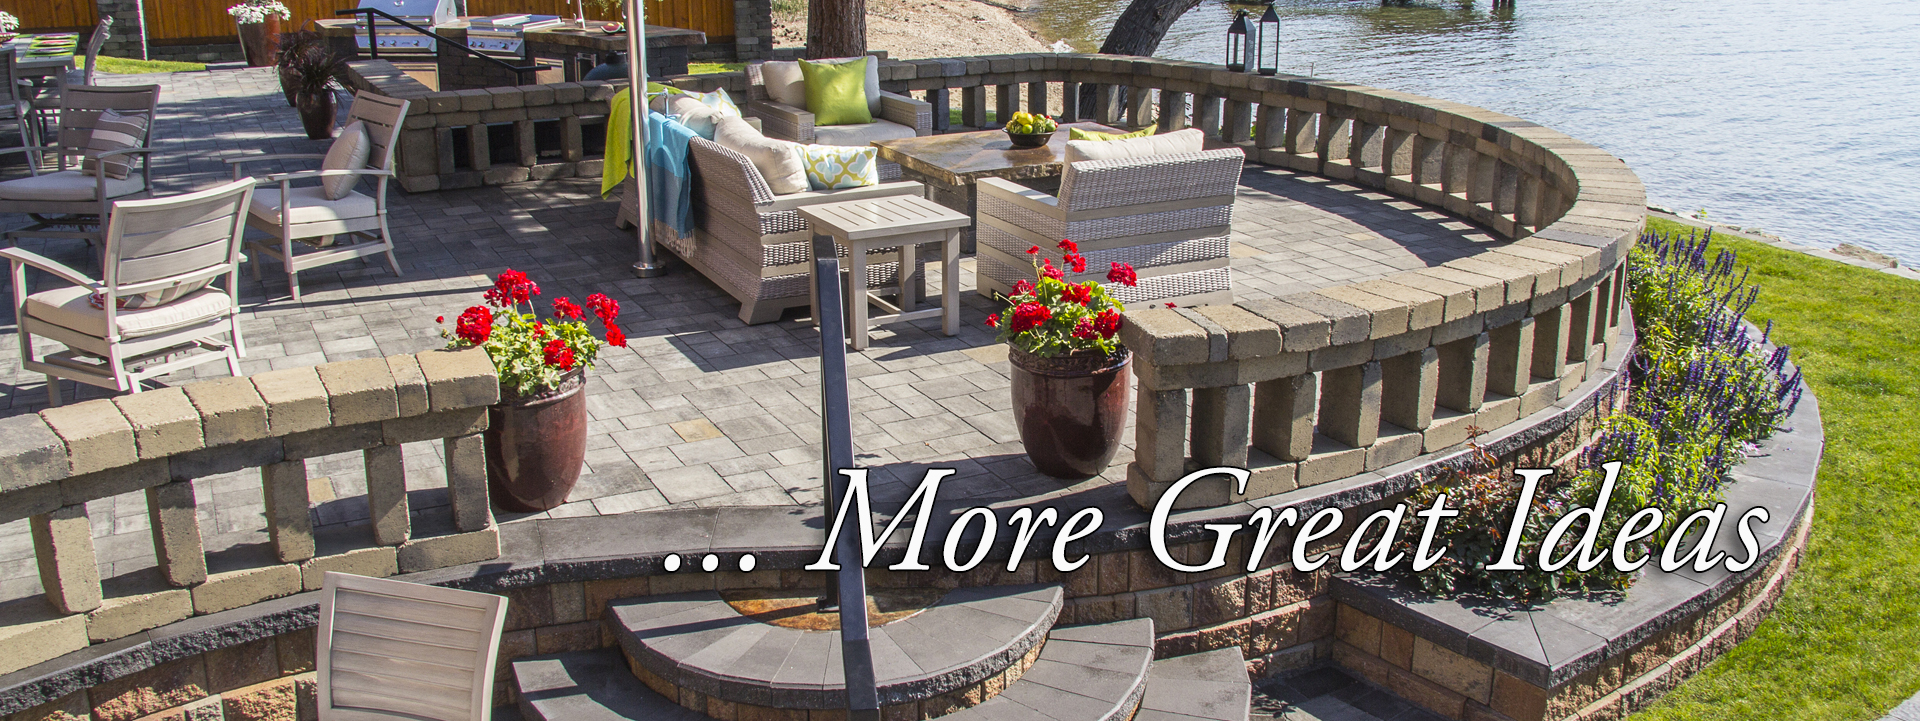 Abbotsford Concrete Products